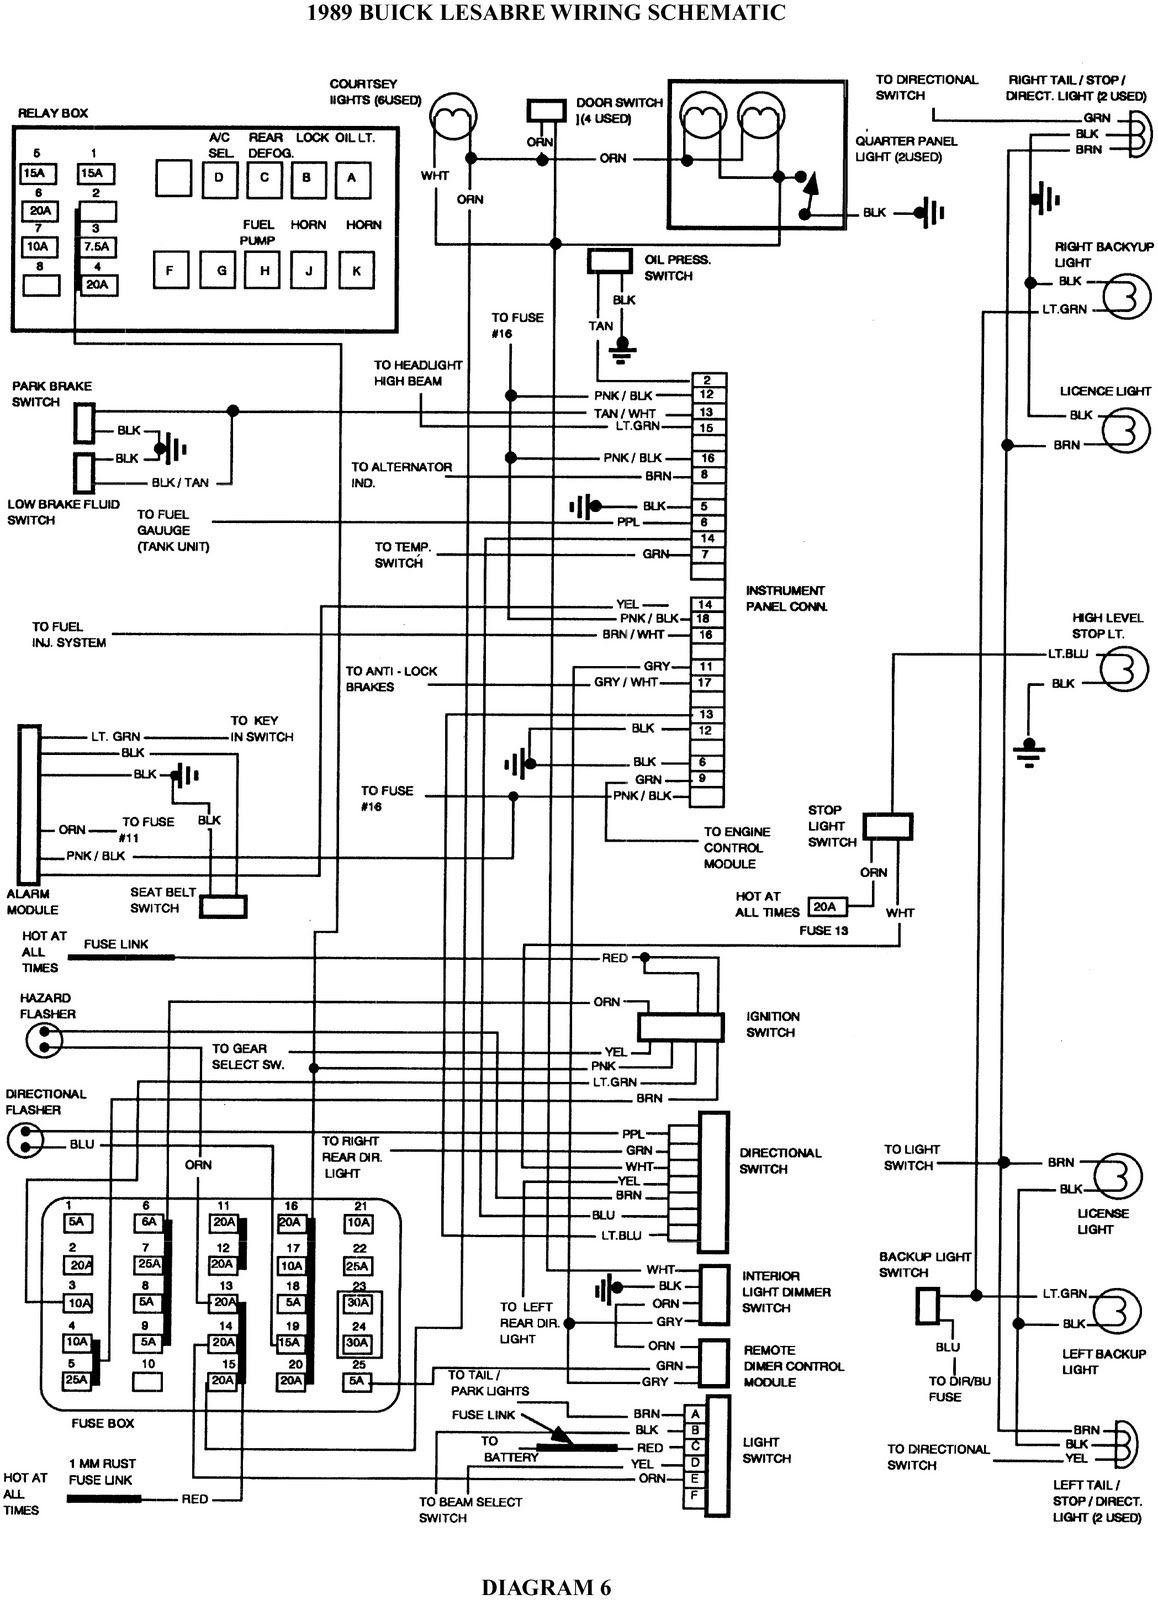 55 fresh 2001 buick lesabre radio wiring diagram in 2020 | electrical wiring  diagram, buick lesabre, alternator  pinterest